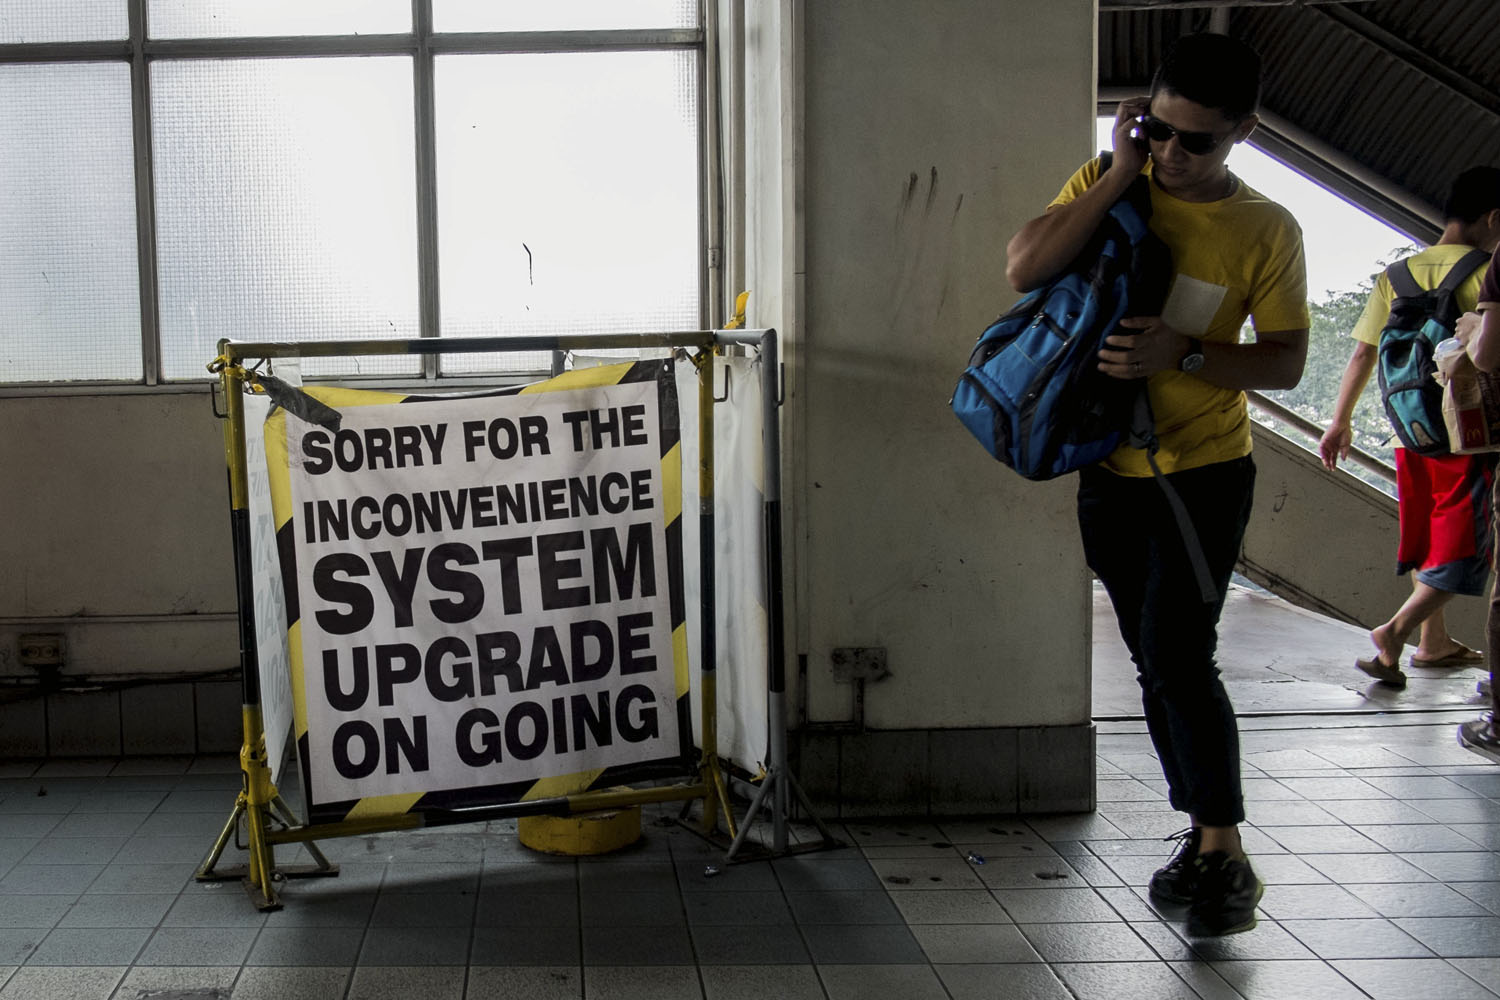 MRT WOES. From January 1 to November 17 2017, there have been 475 MRT3 problems already recorded u2013 an average of 10.33 a week, or more than once a day on some days. Photo by Mark Z. Saludes/Rappler